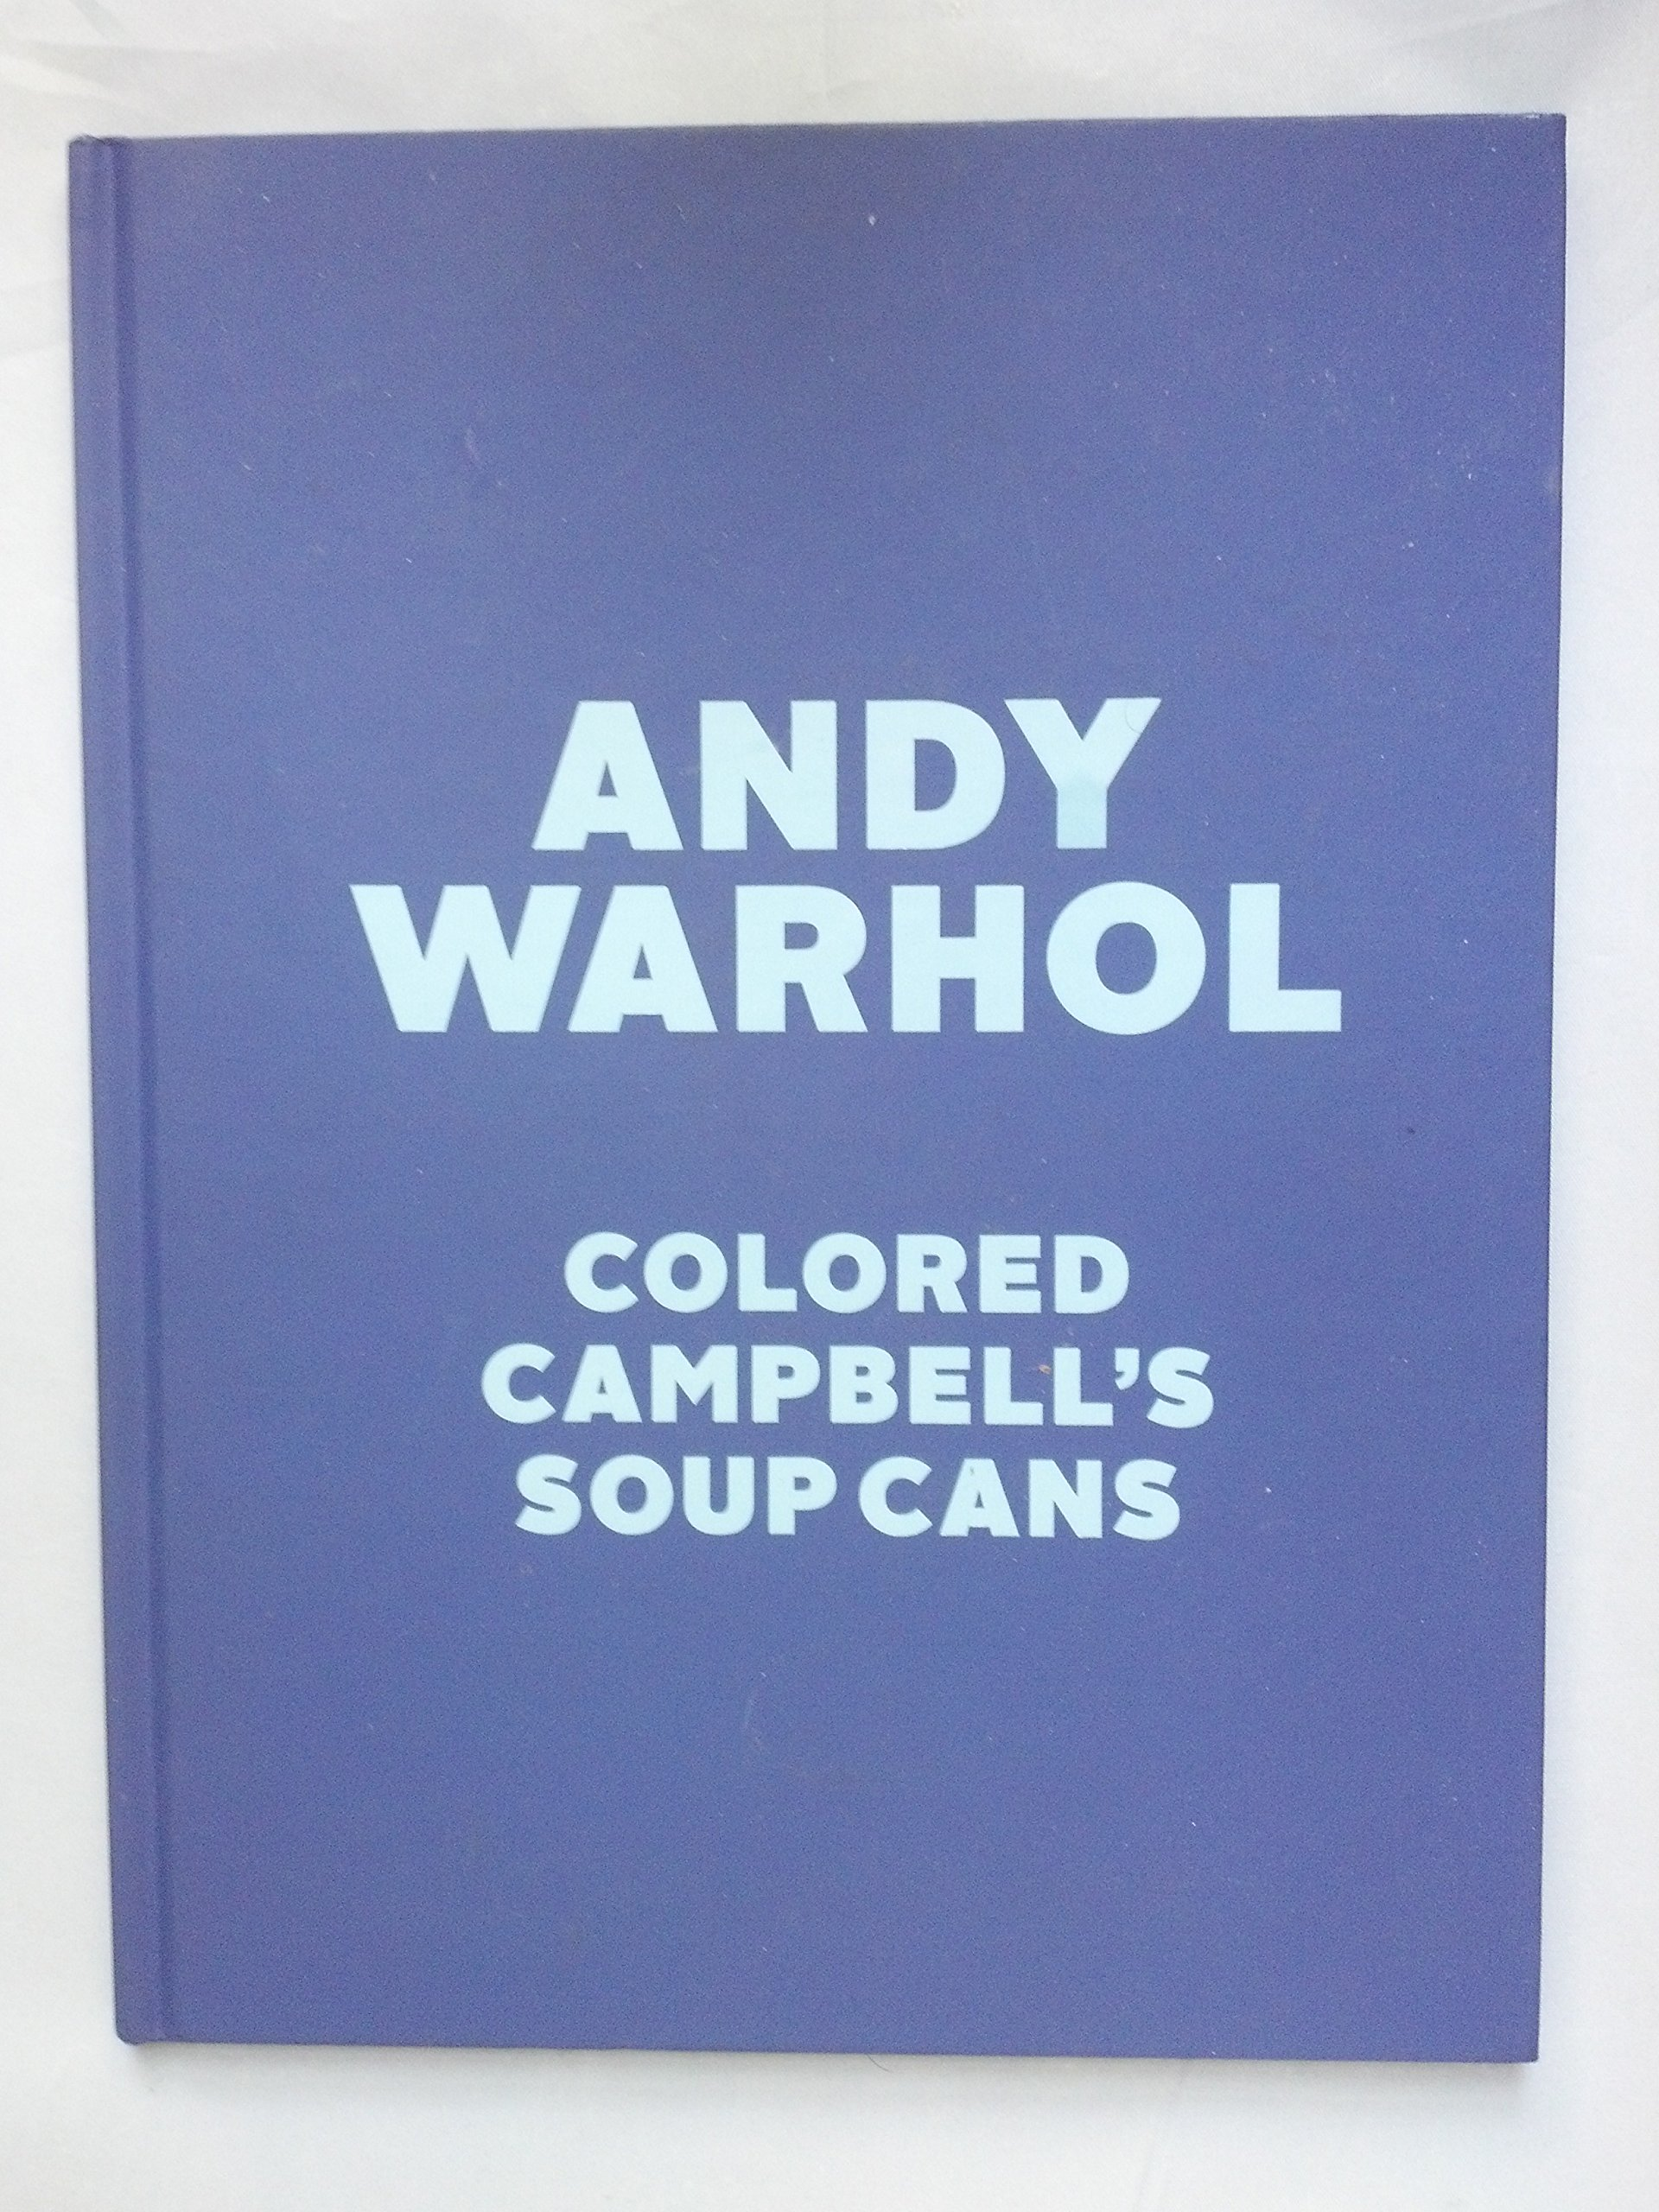 andy warhol colored campbells soup cans